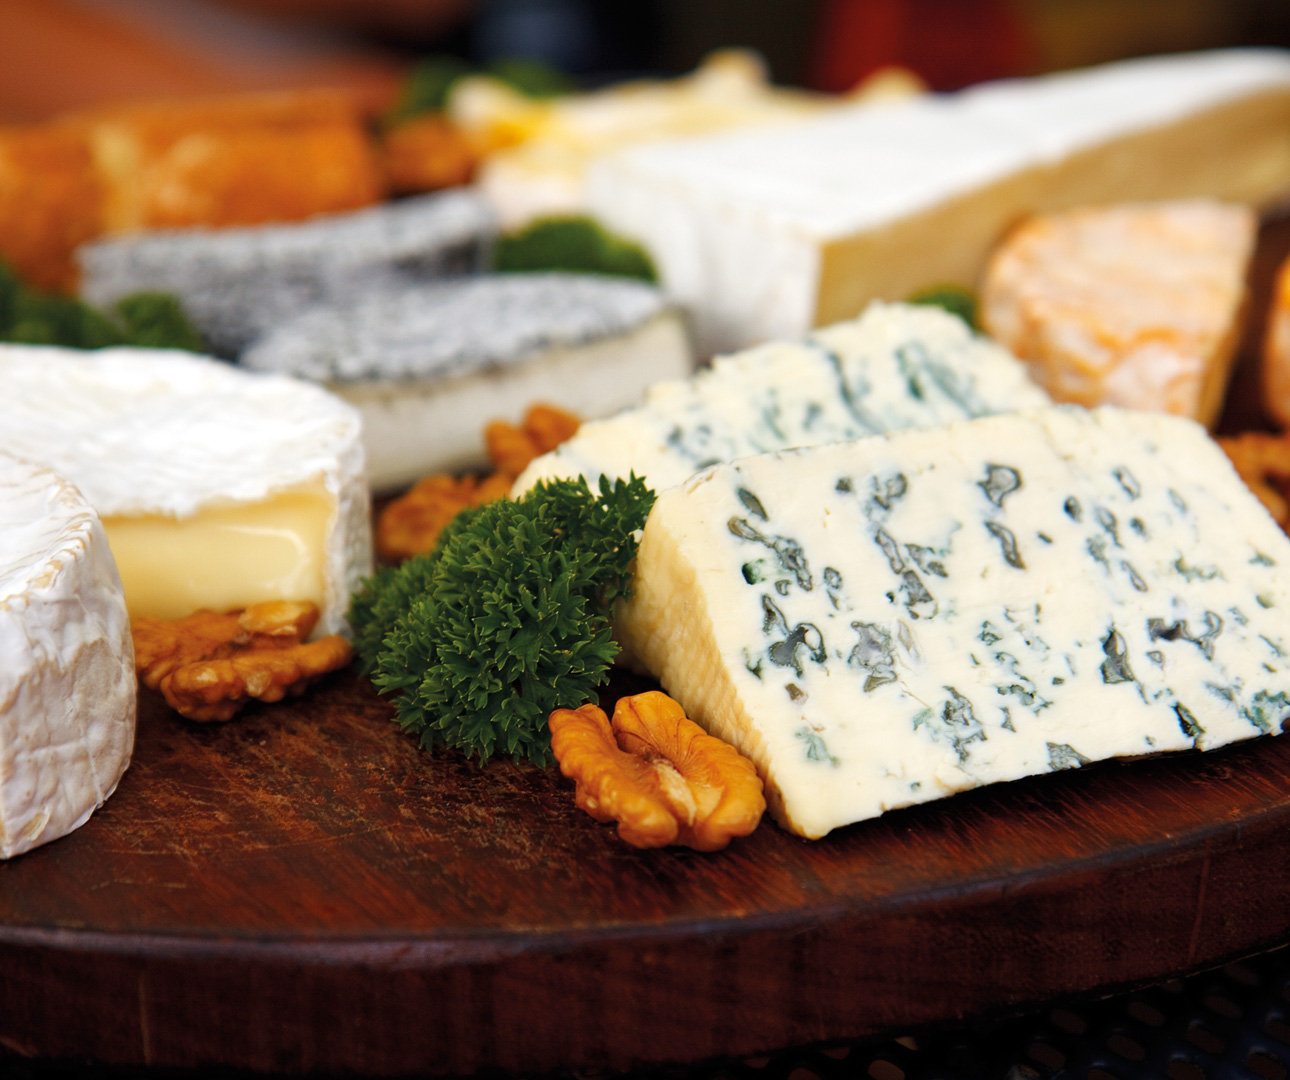 The Loire Valley is known for a variety of cheeses